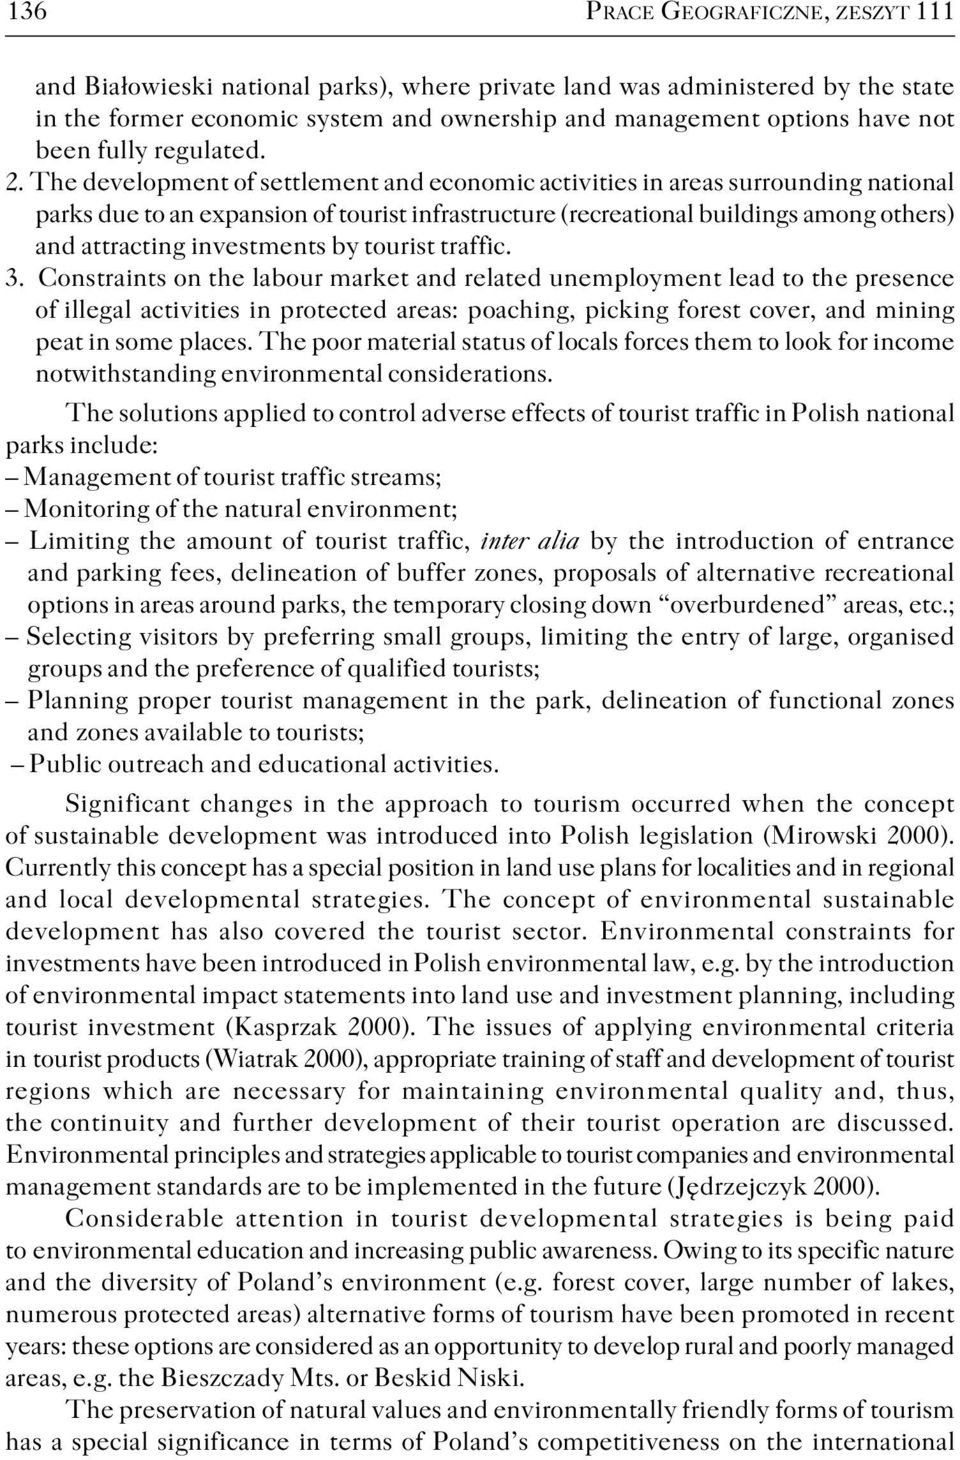 The development of settlement and economic activities in areas surrounding national parks due to an expansion of tourist infrastructure (recreational buildings among others) and attracting